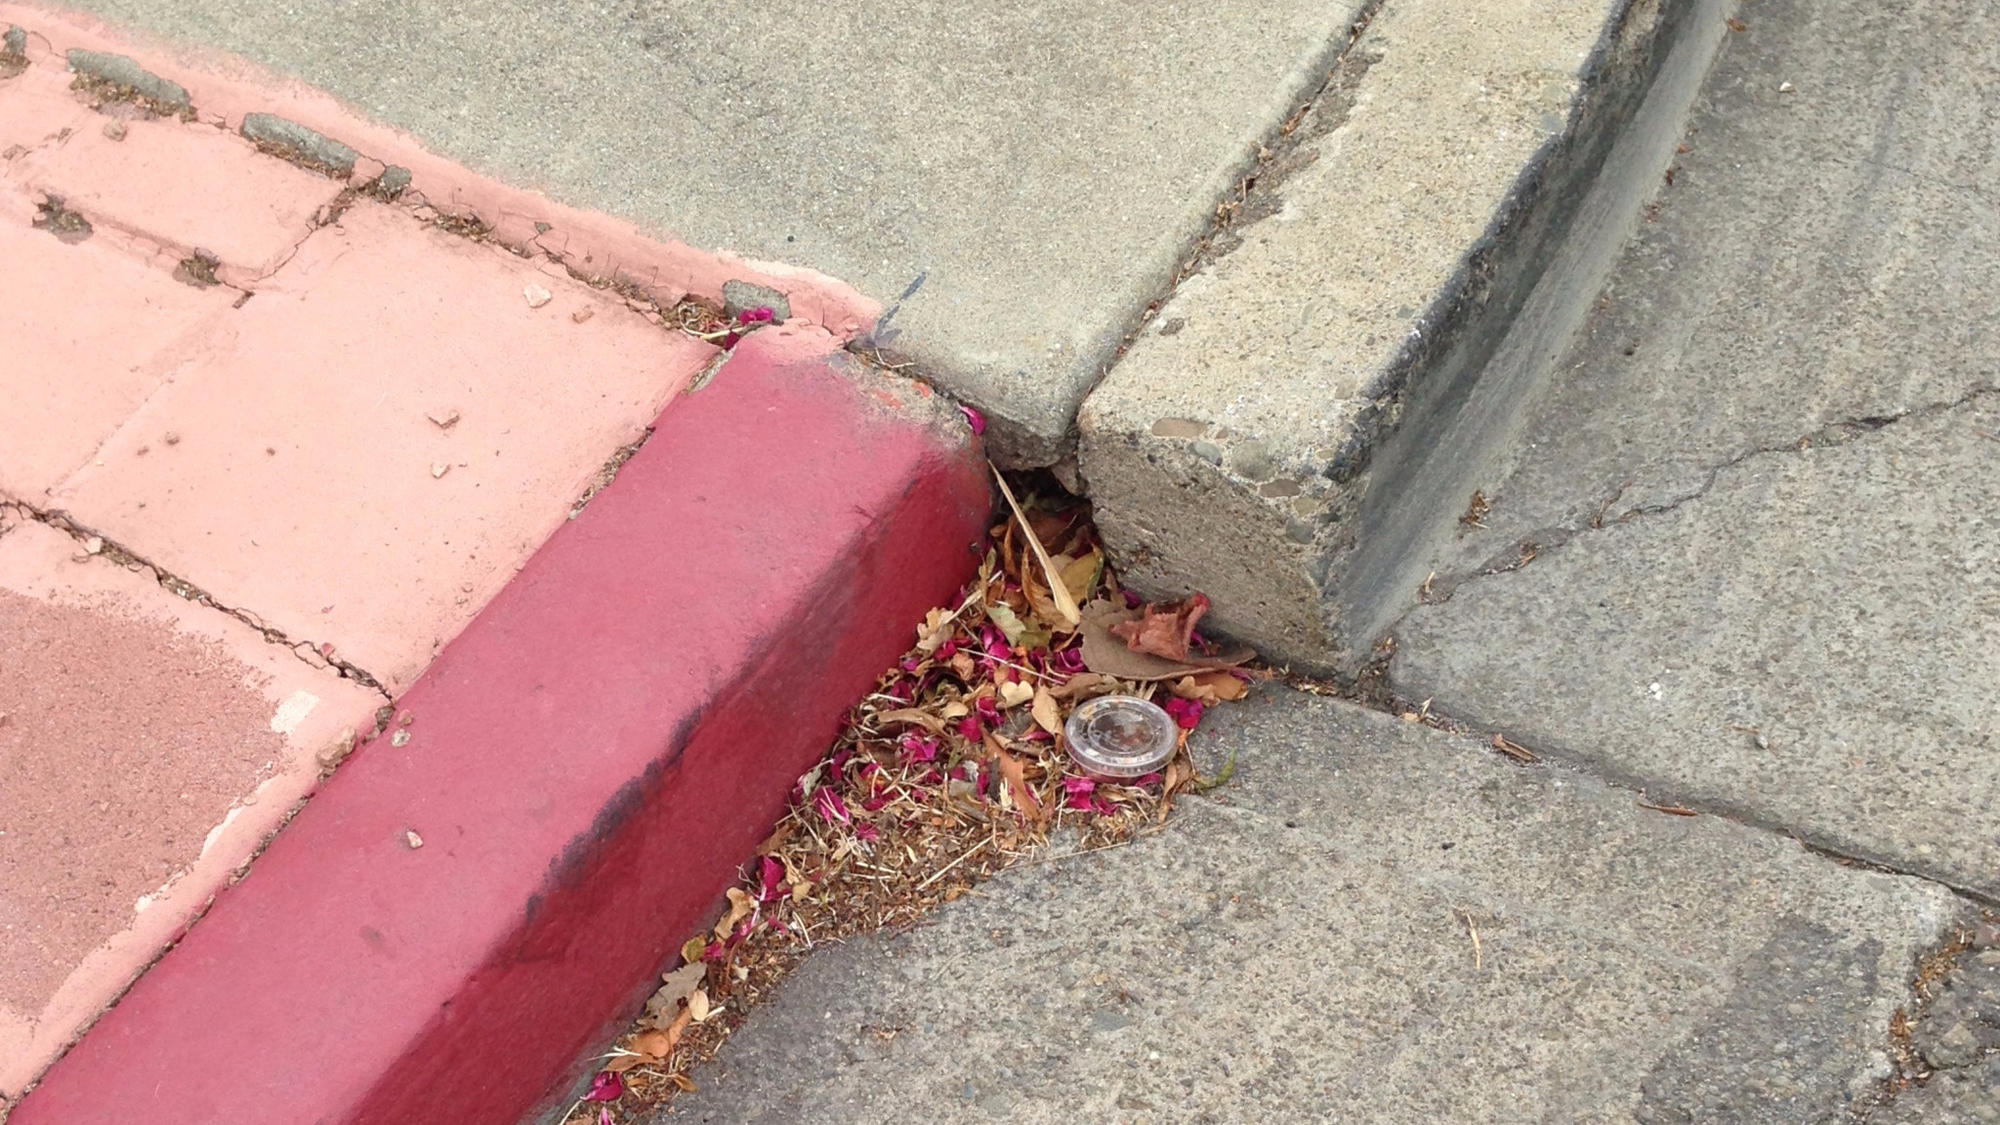 This curb was once flush but became offset because the Hayward fault is pulling the curb apart.